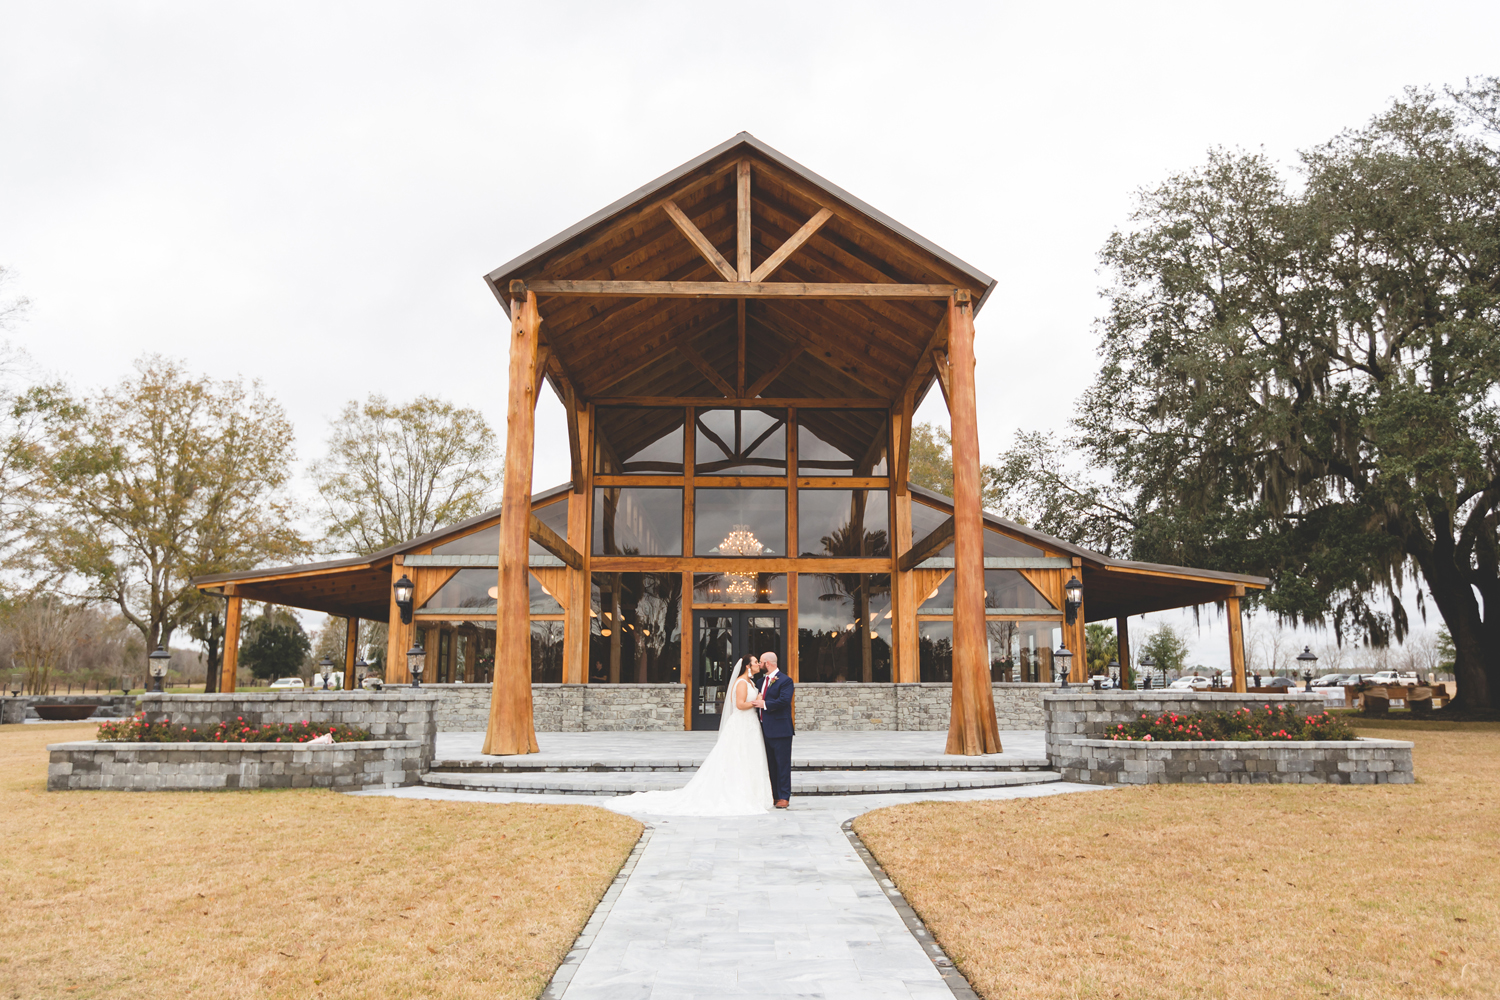 Jaime DiOrio Barn Wedding Photographer - orlando wedding photographer.jpg